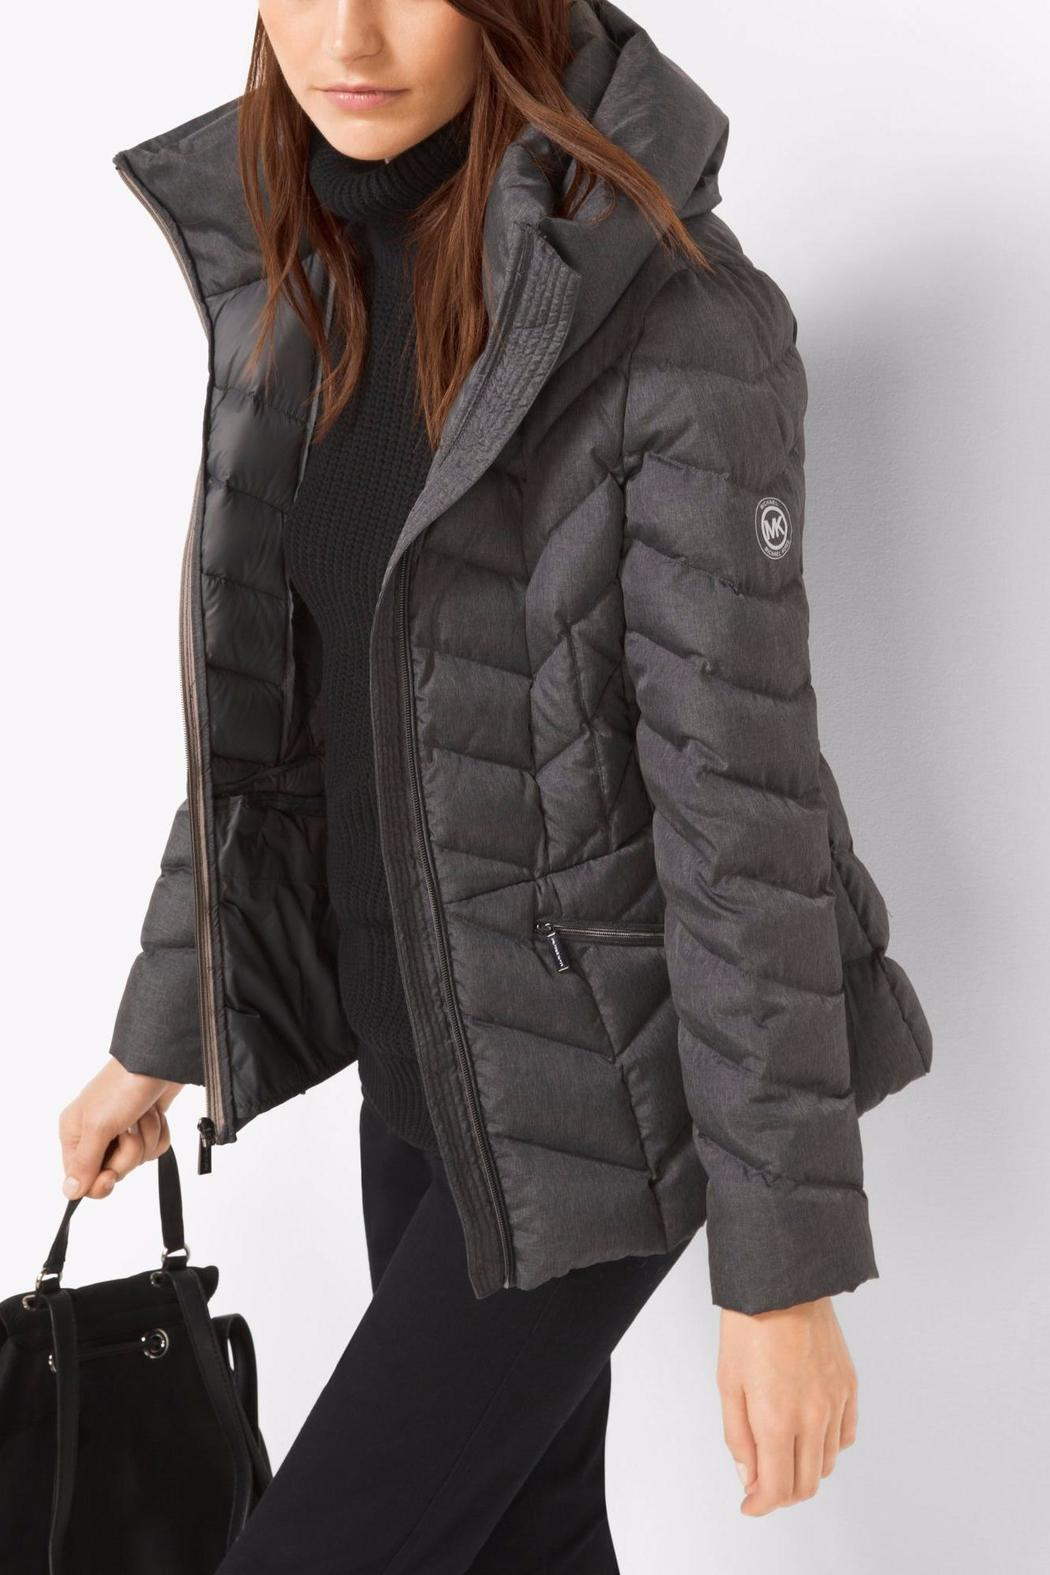 Michael By Michael Kors Packable Quilted Nylon Jacket From